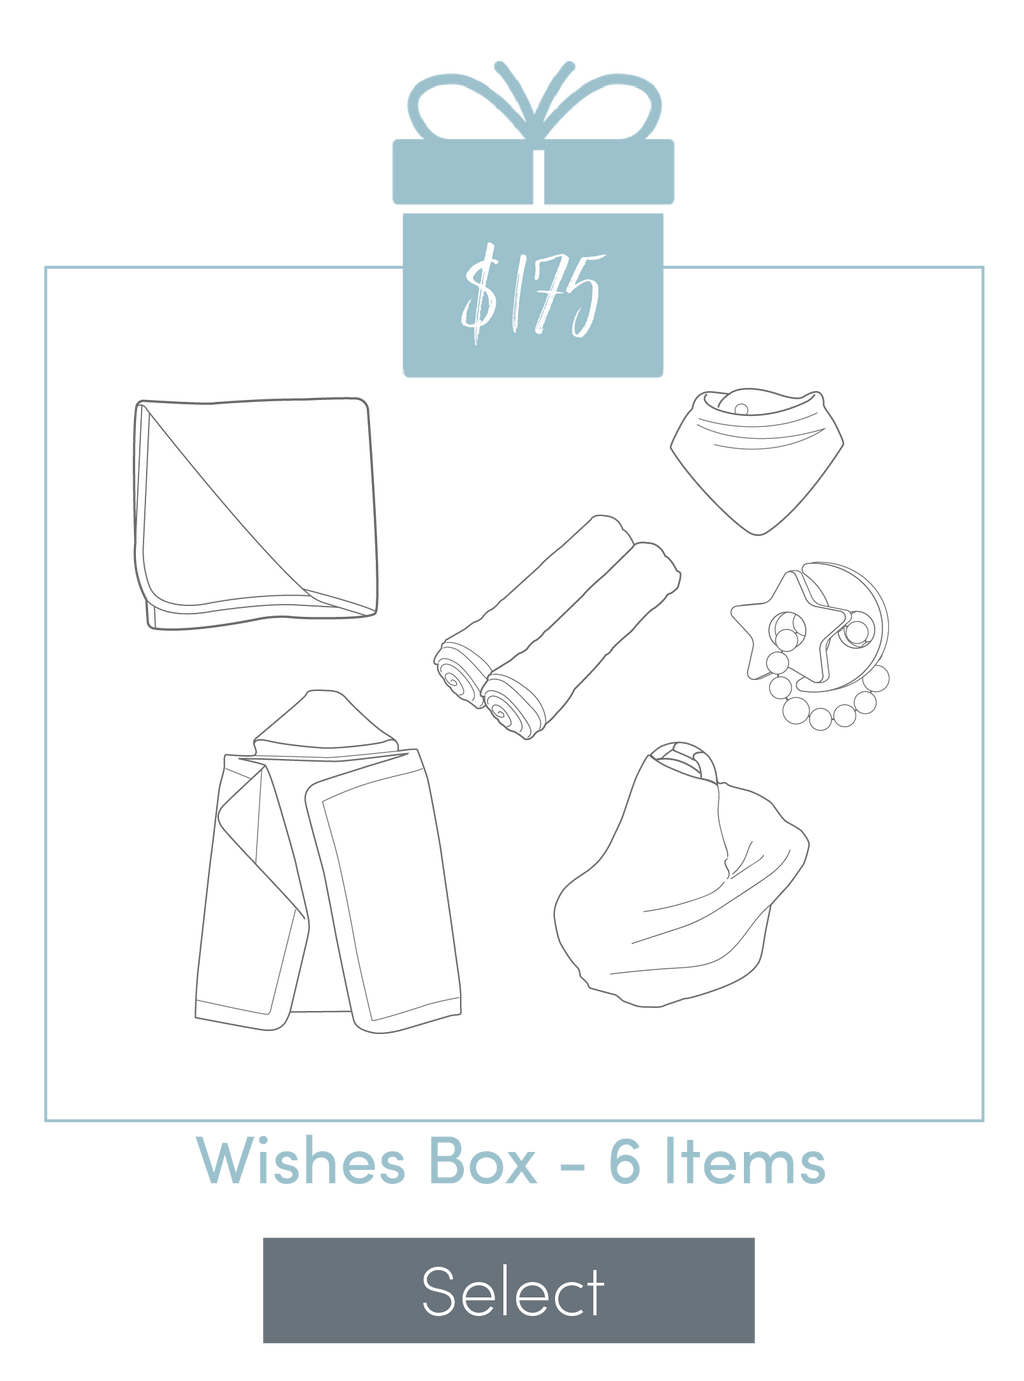 $175 Wishes Box - 6 Items